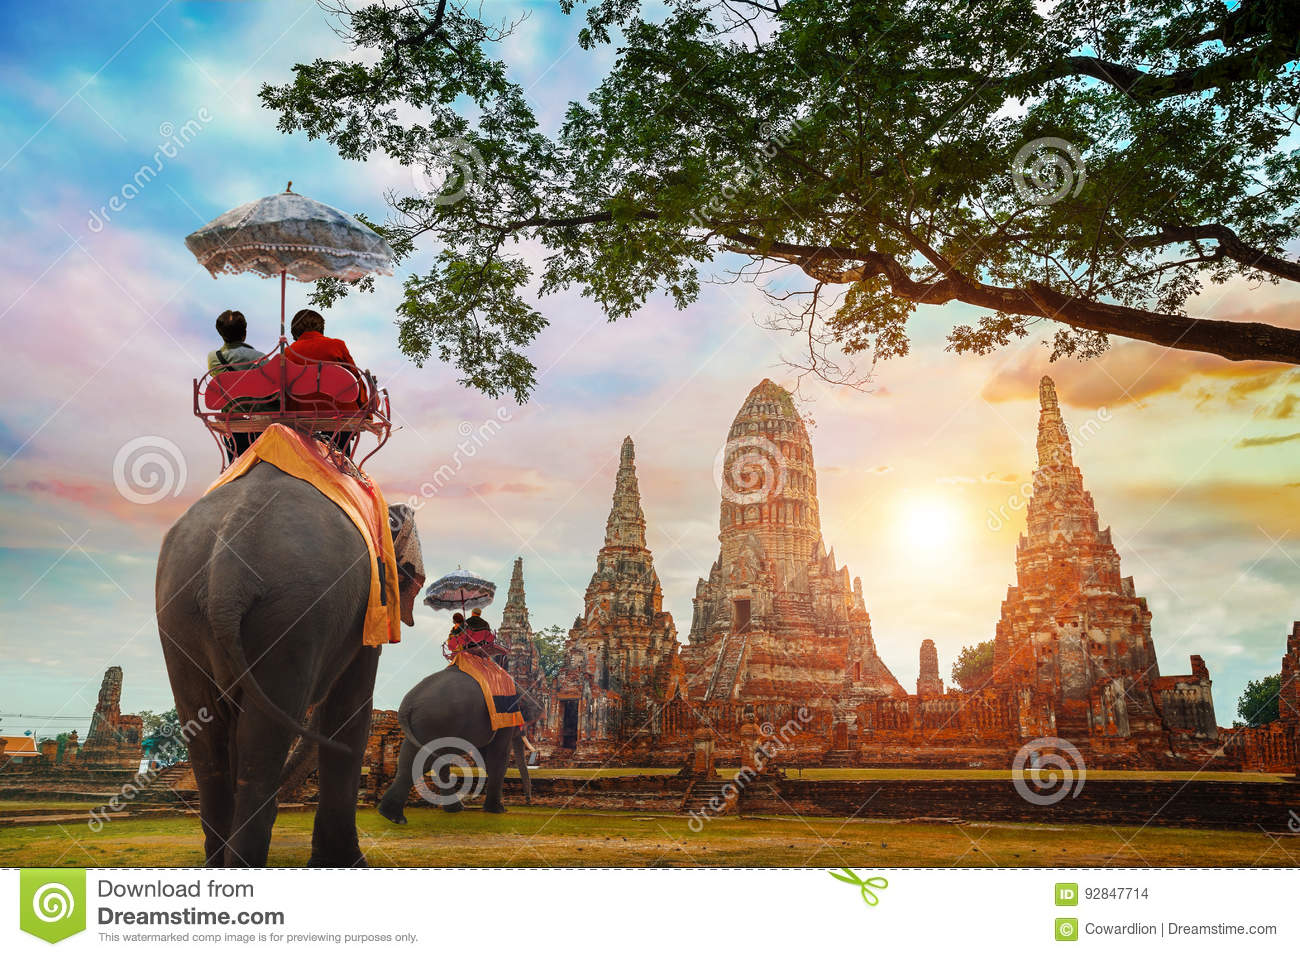 Tourists with Elephants at Wat Chaiwatthanaram temple in Ayuthaya Historical Park, Thailand